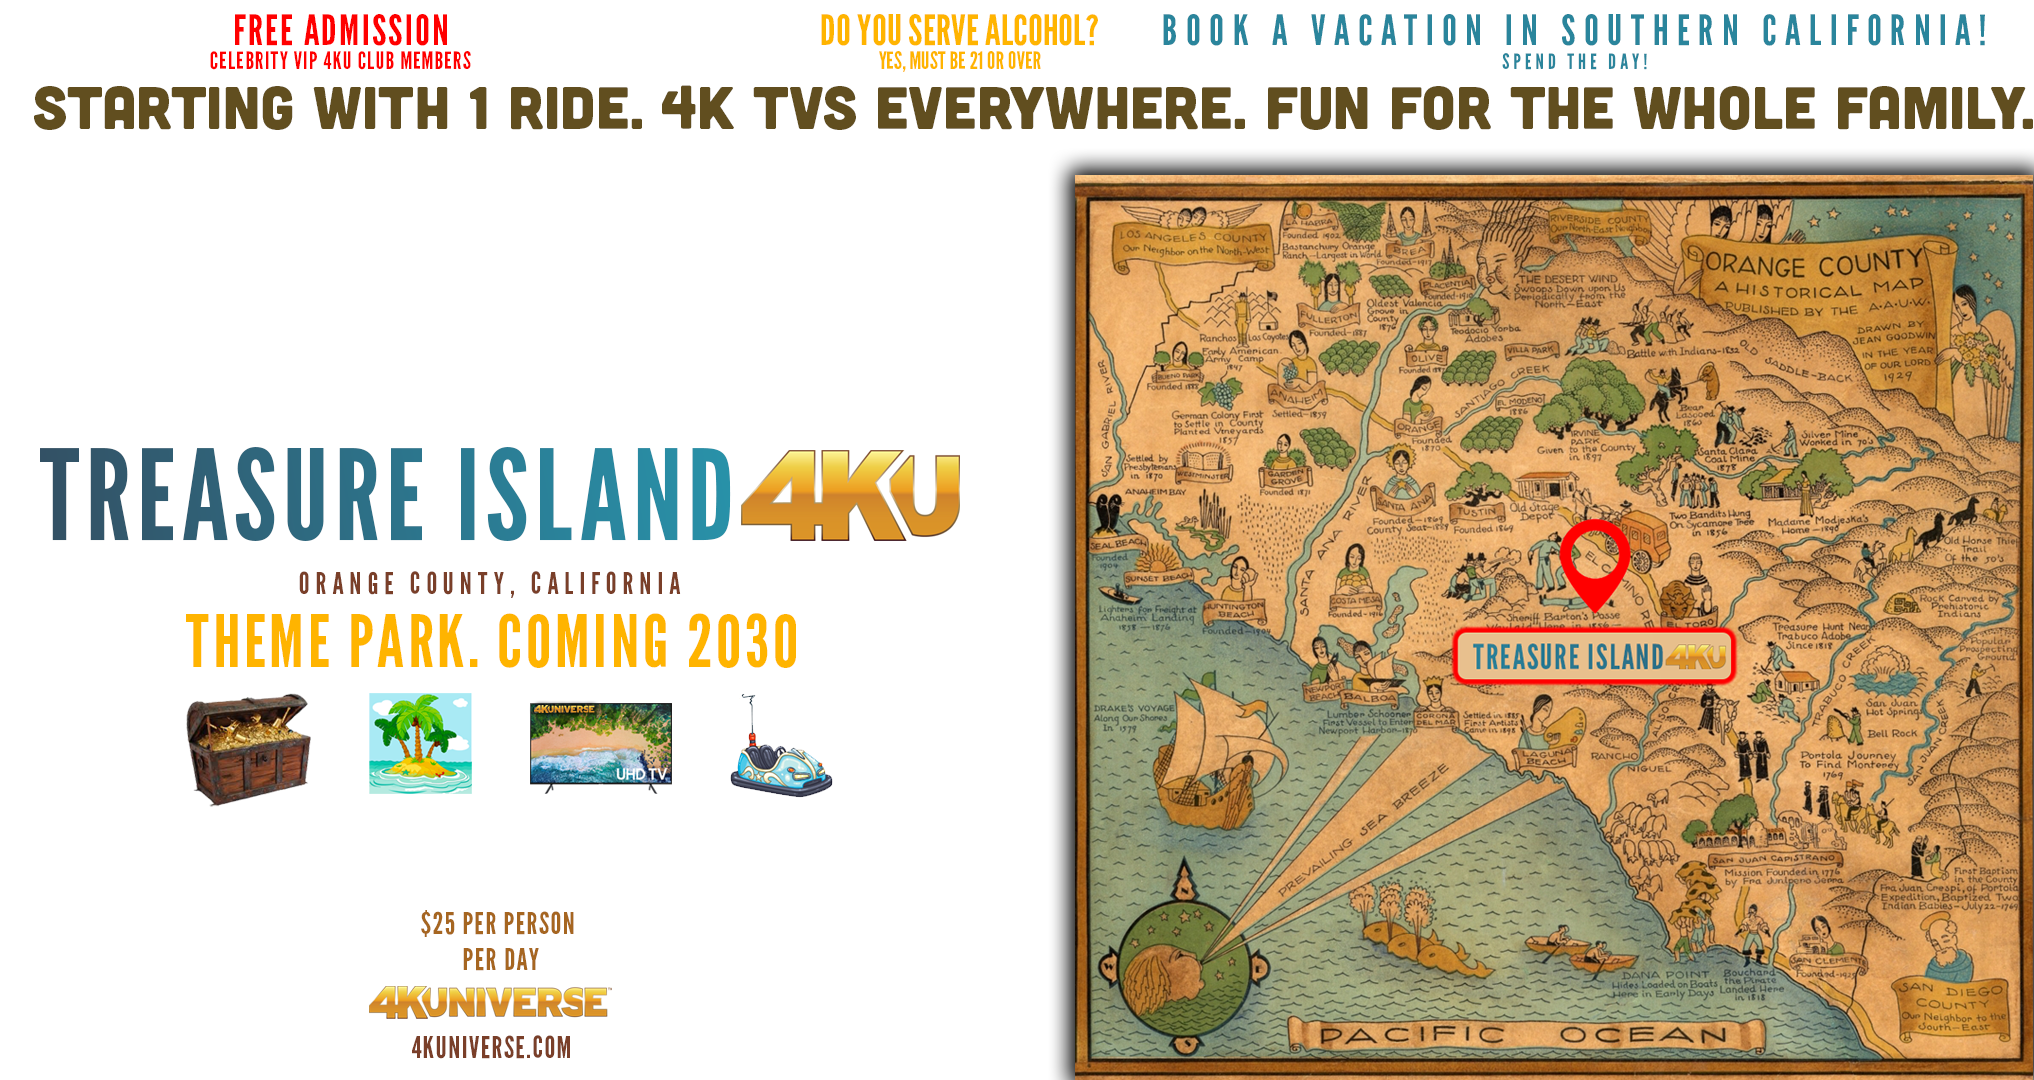 Treasure Island 4KU Theme Park